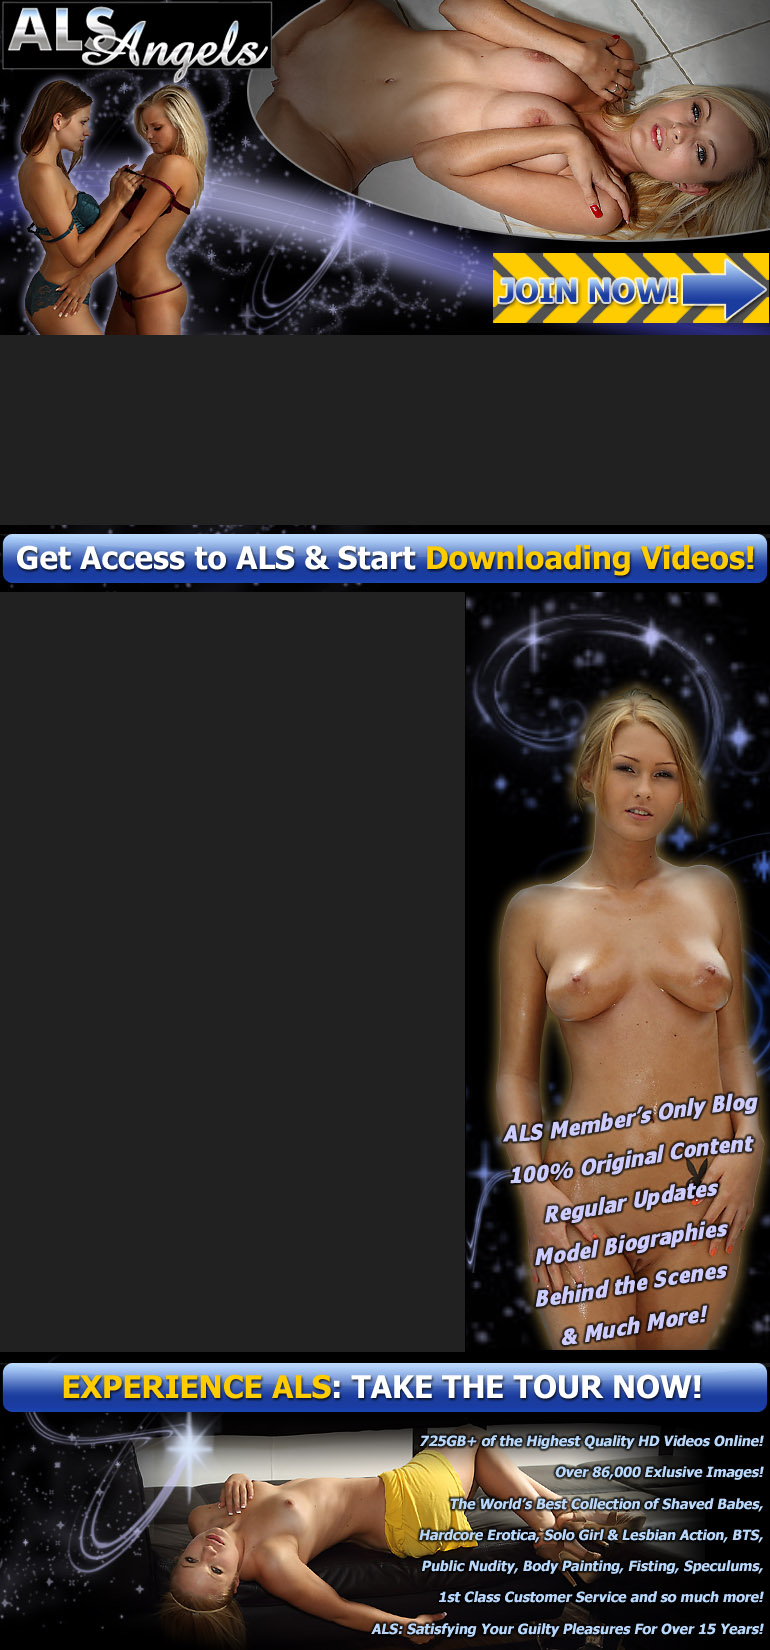 ALSAngels.com Thumbnail Gallery Page